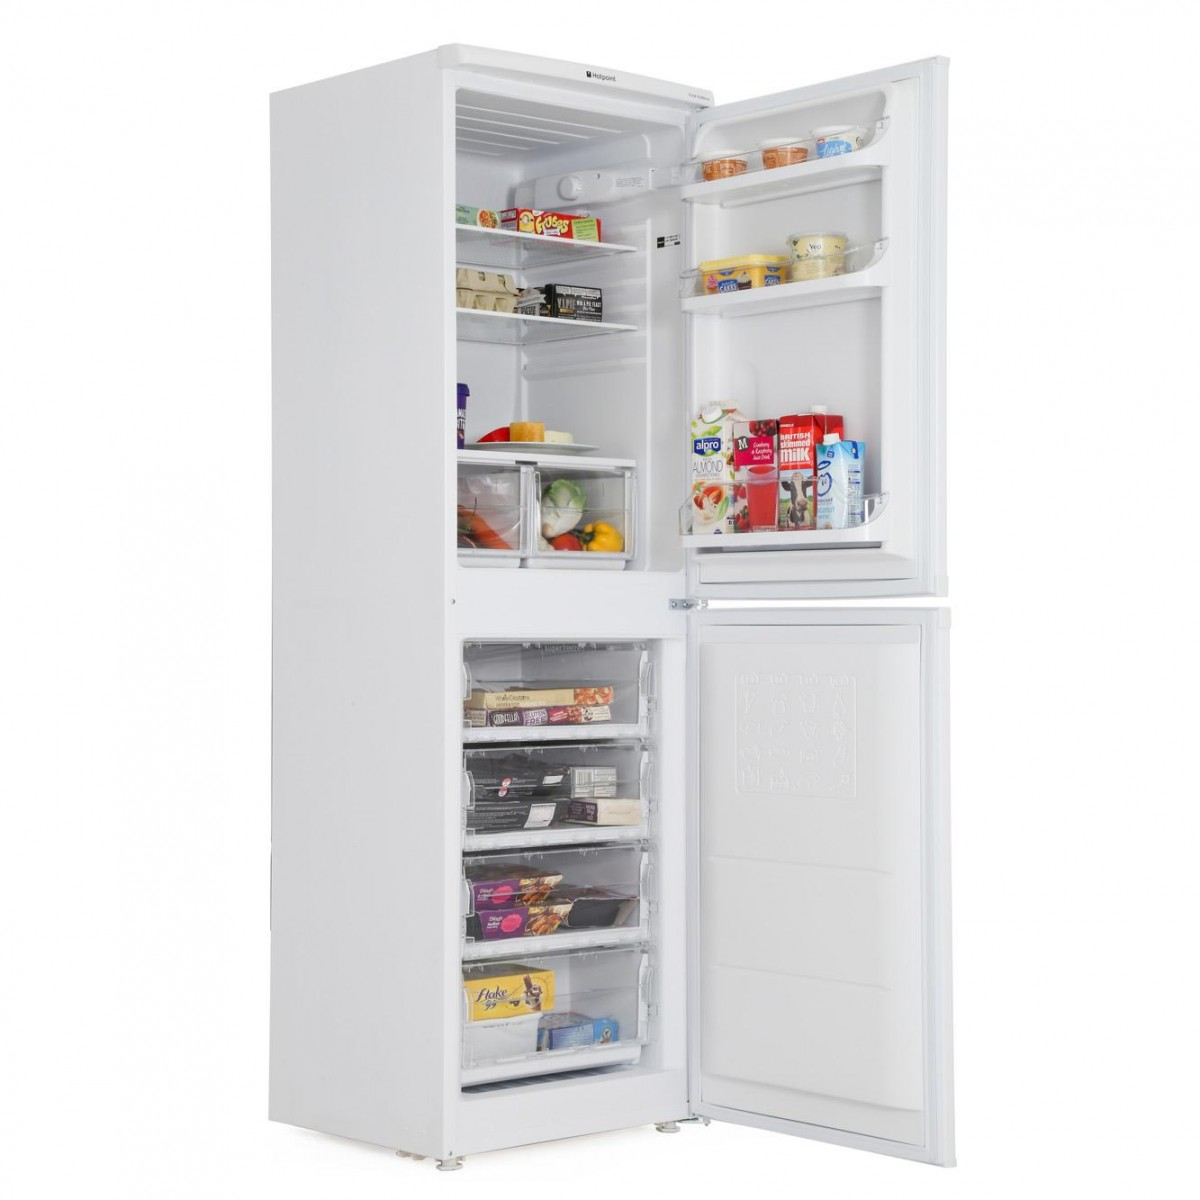 Fridge Freezer Hotpoint Hbd5517w 55cm Fridge Freezer White A Energy Rated